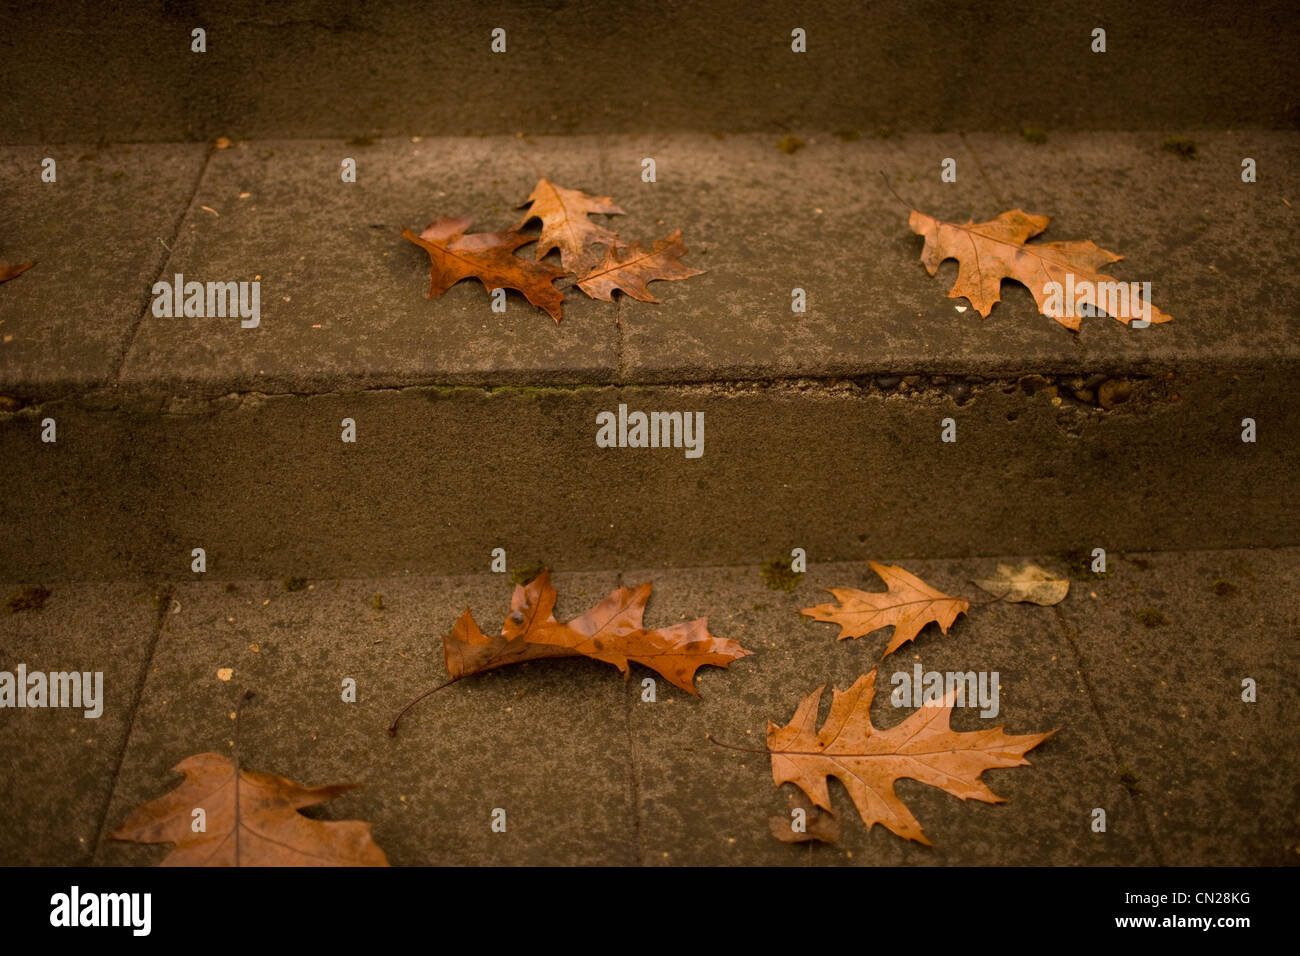 Autumn leaves on steps - Stock Image